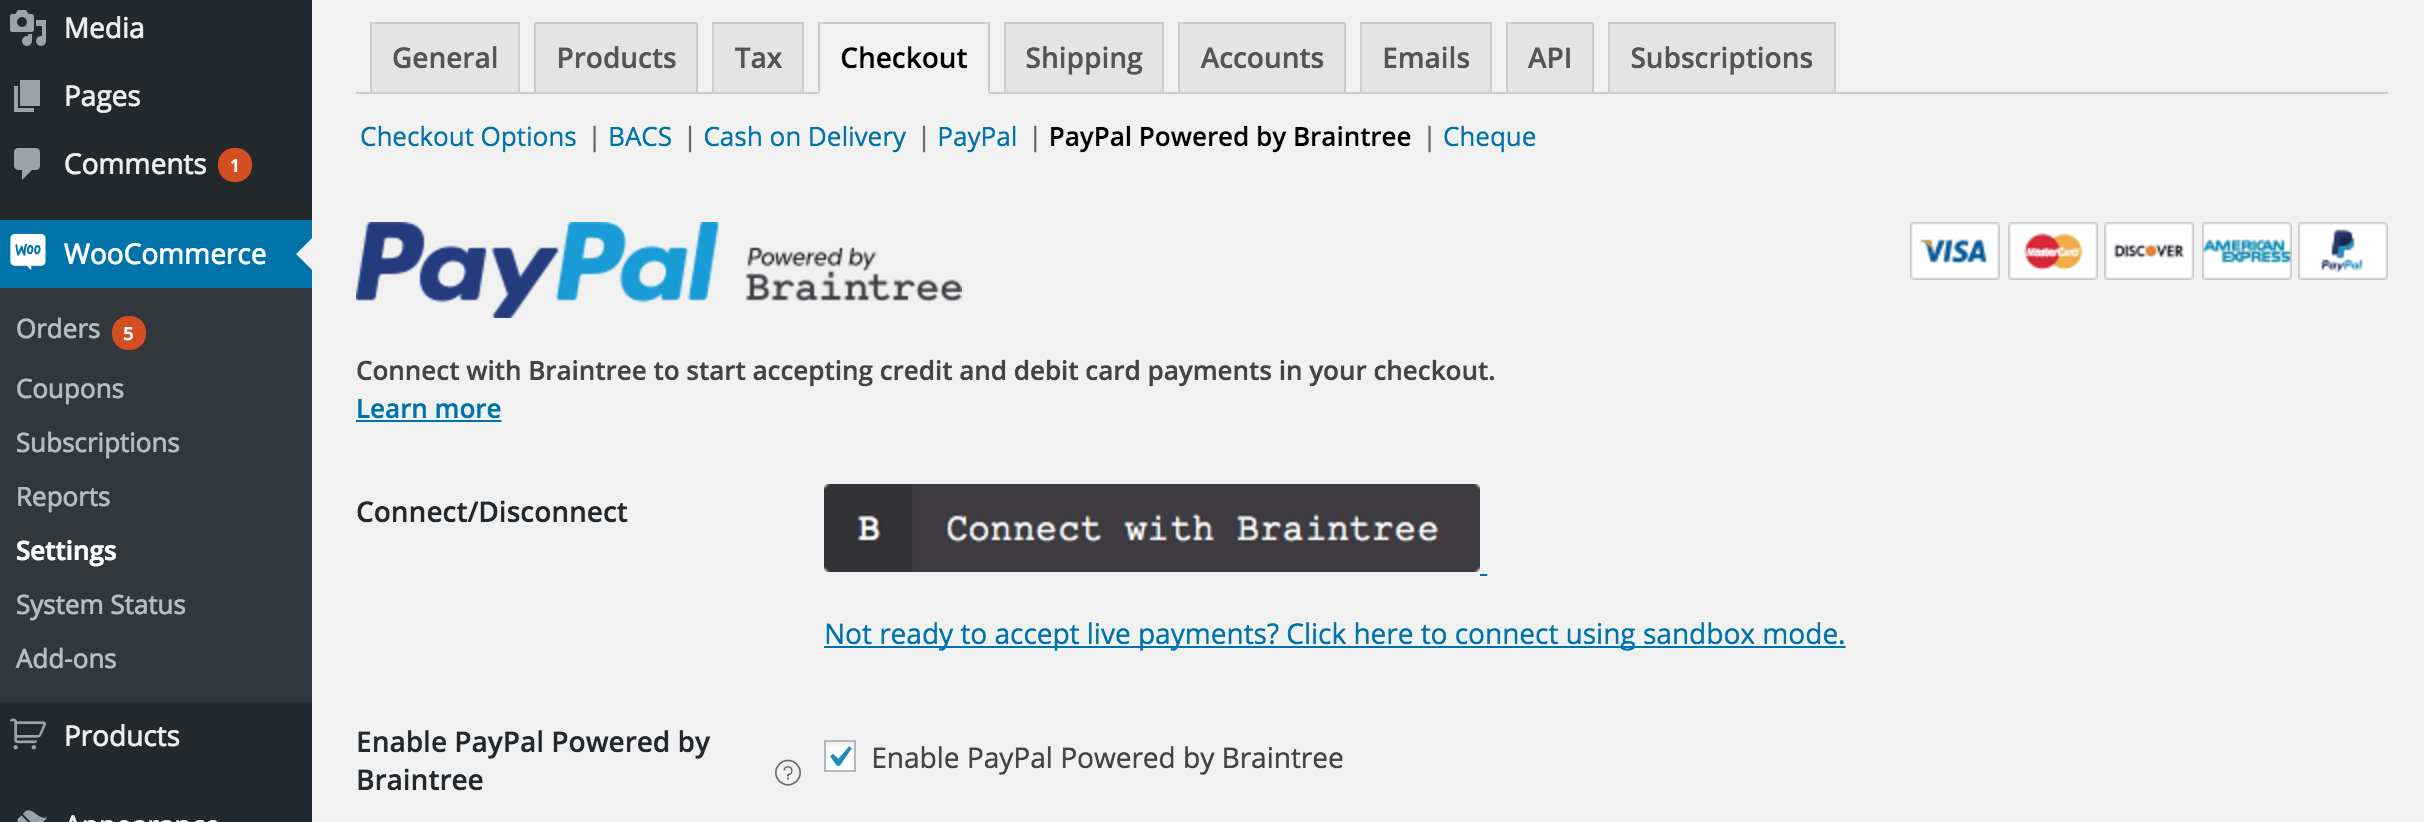 WooCommerce PayPal Powered by Braintree Payment Gateway Plugin WordPress, Download, Install